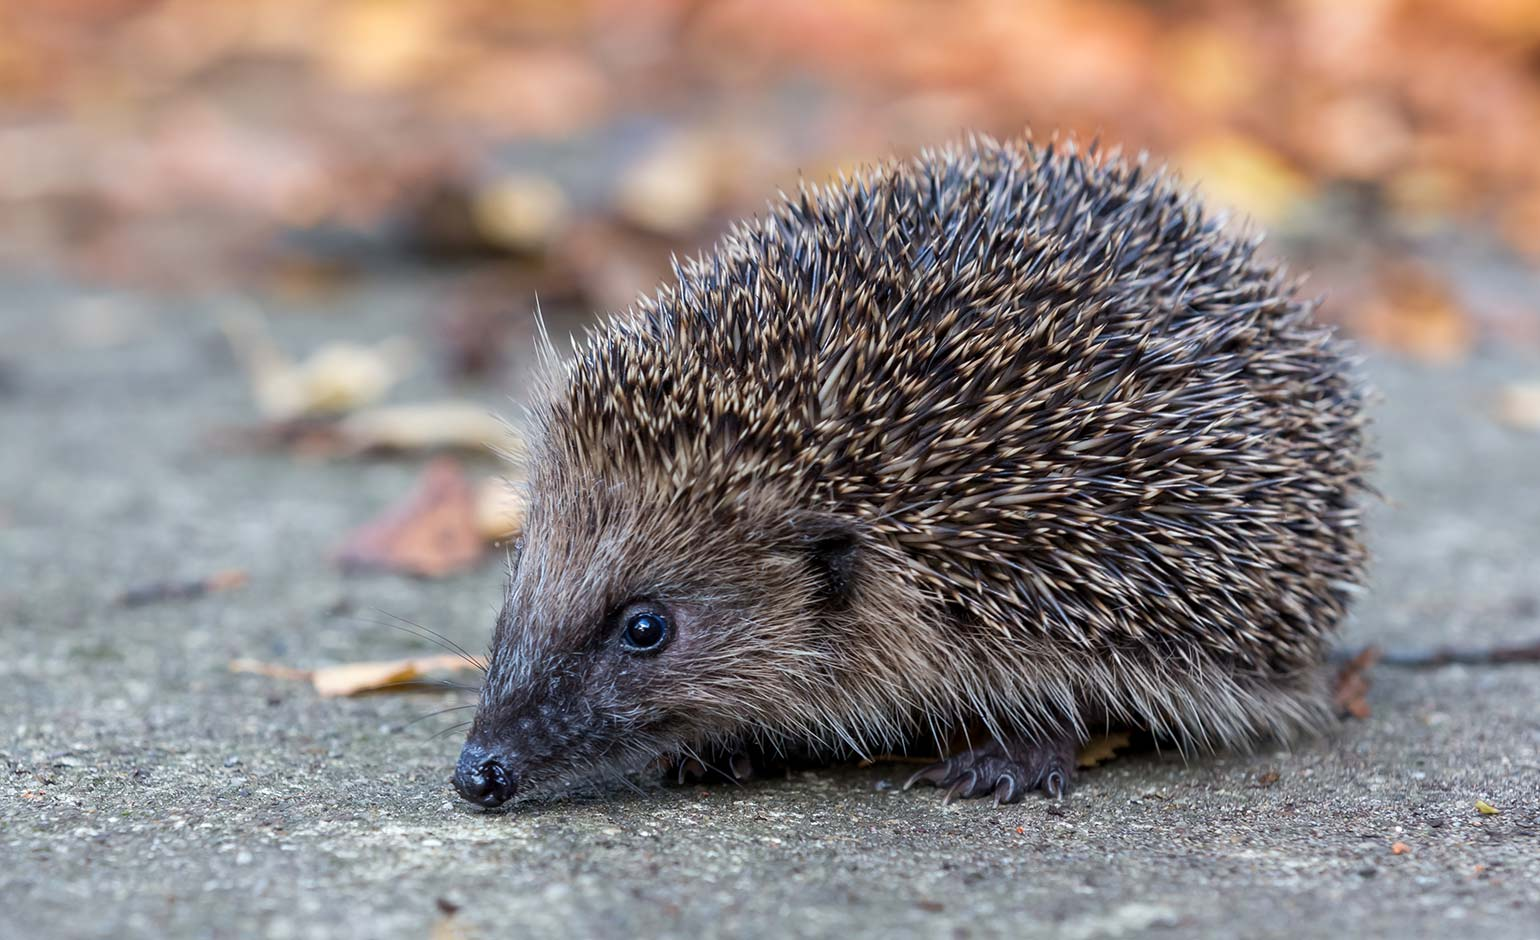 Hedgehog highway constructed at local development to encourage wildlife